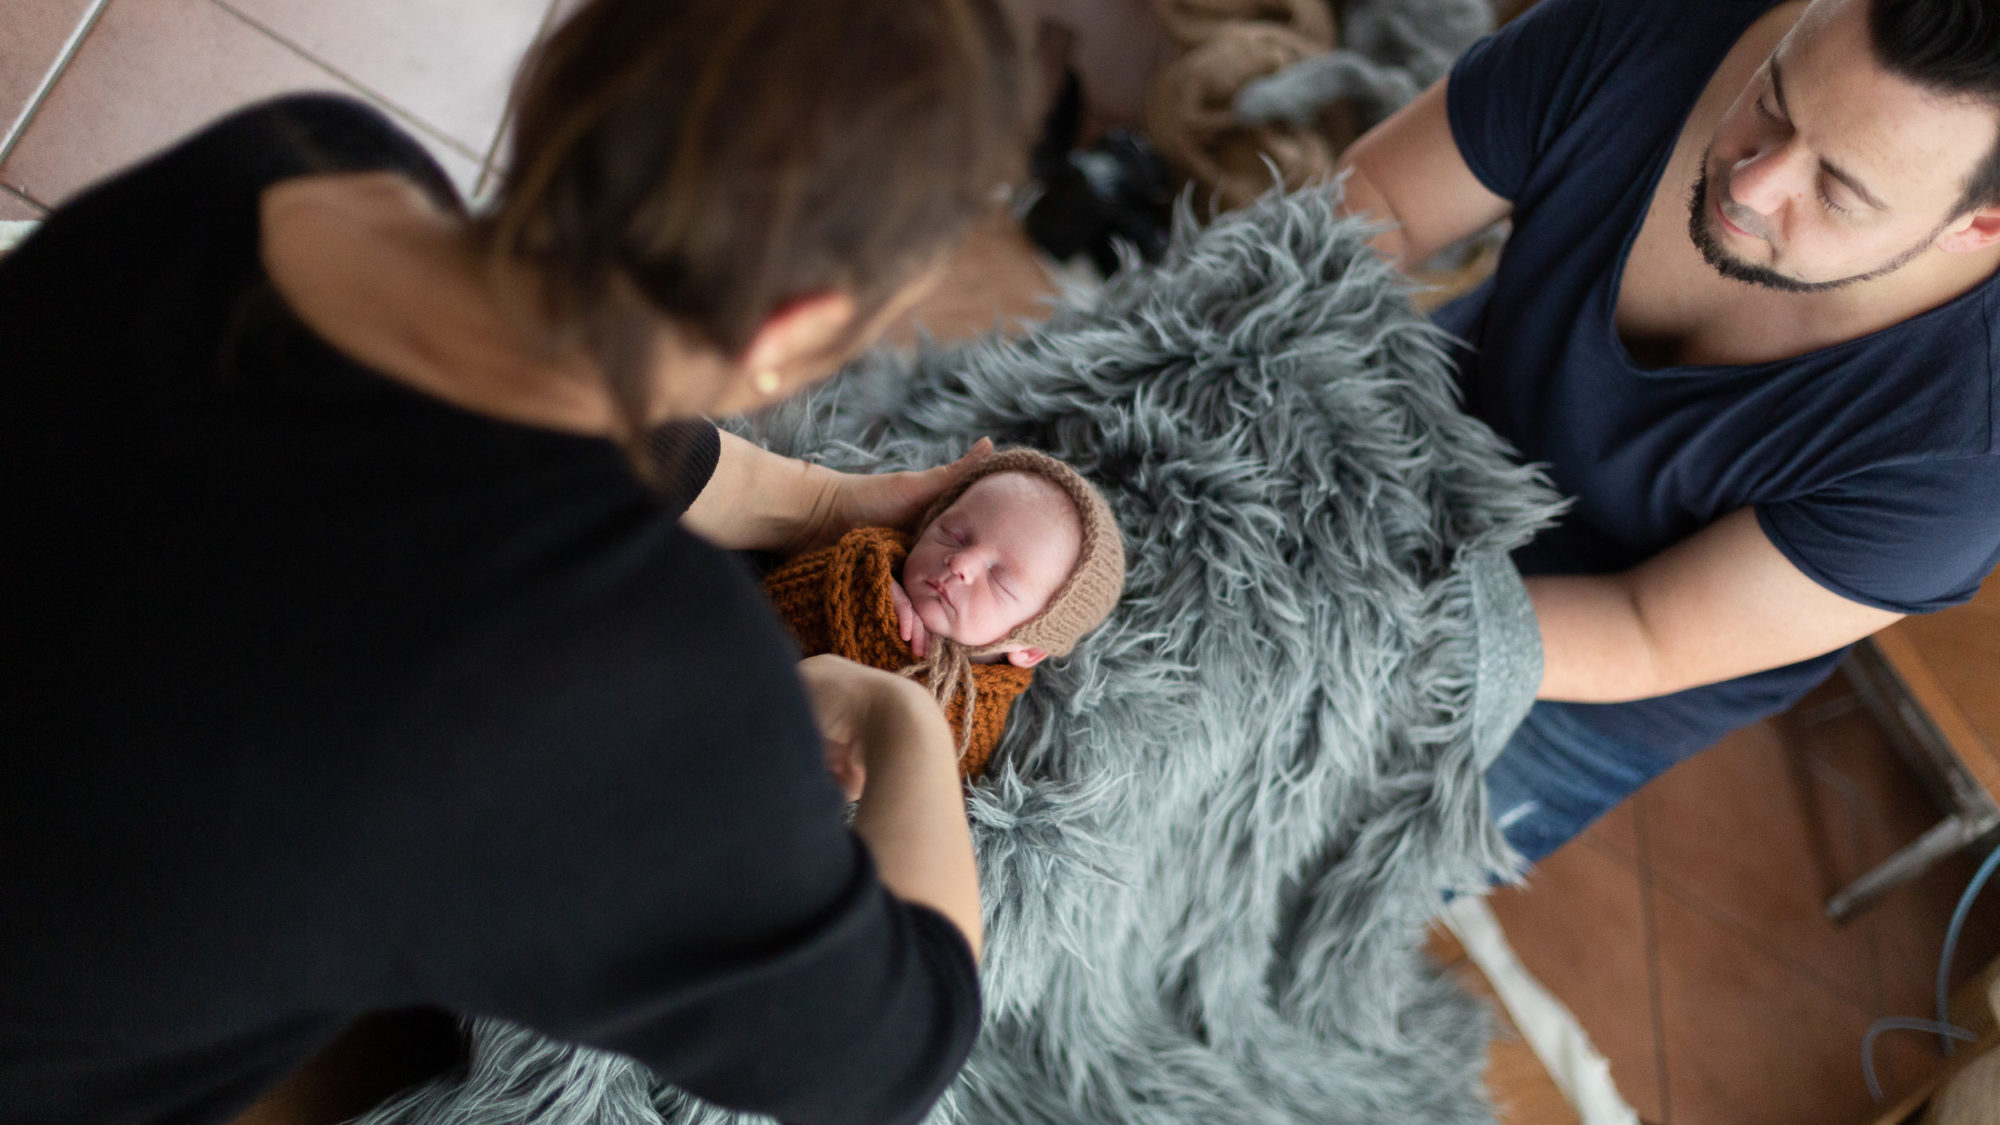 Behind the Scenes Aufnahme Workshop Newbornfotografie bei Stella & Uwe Fotografie in Papenburg.